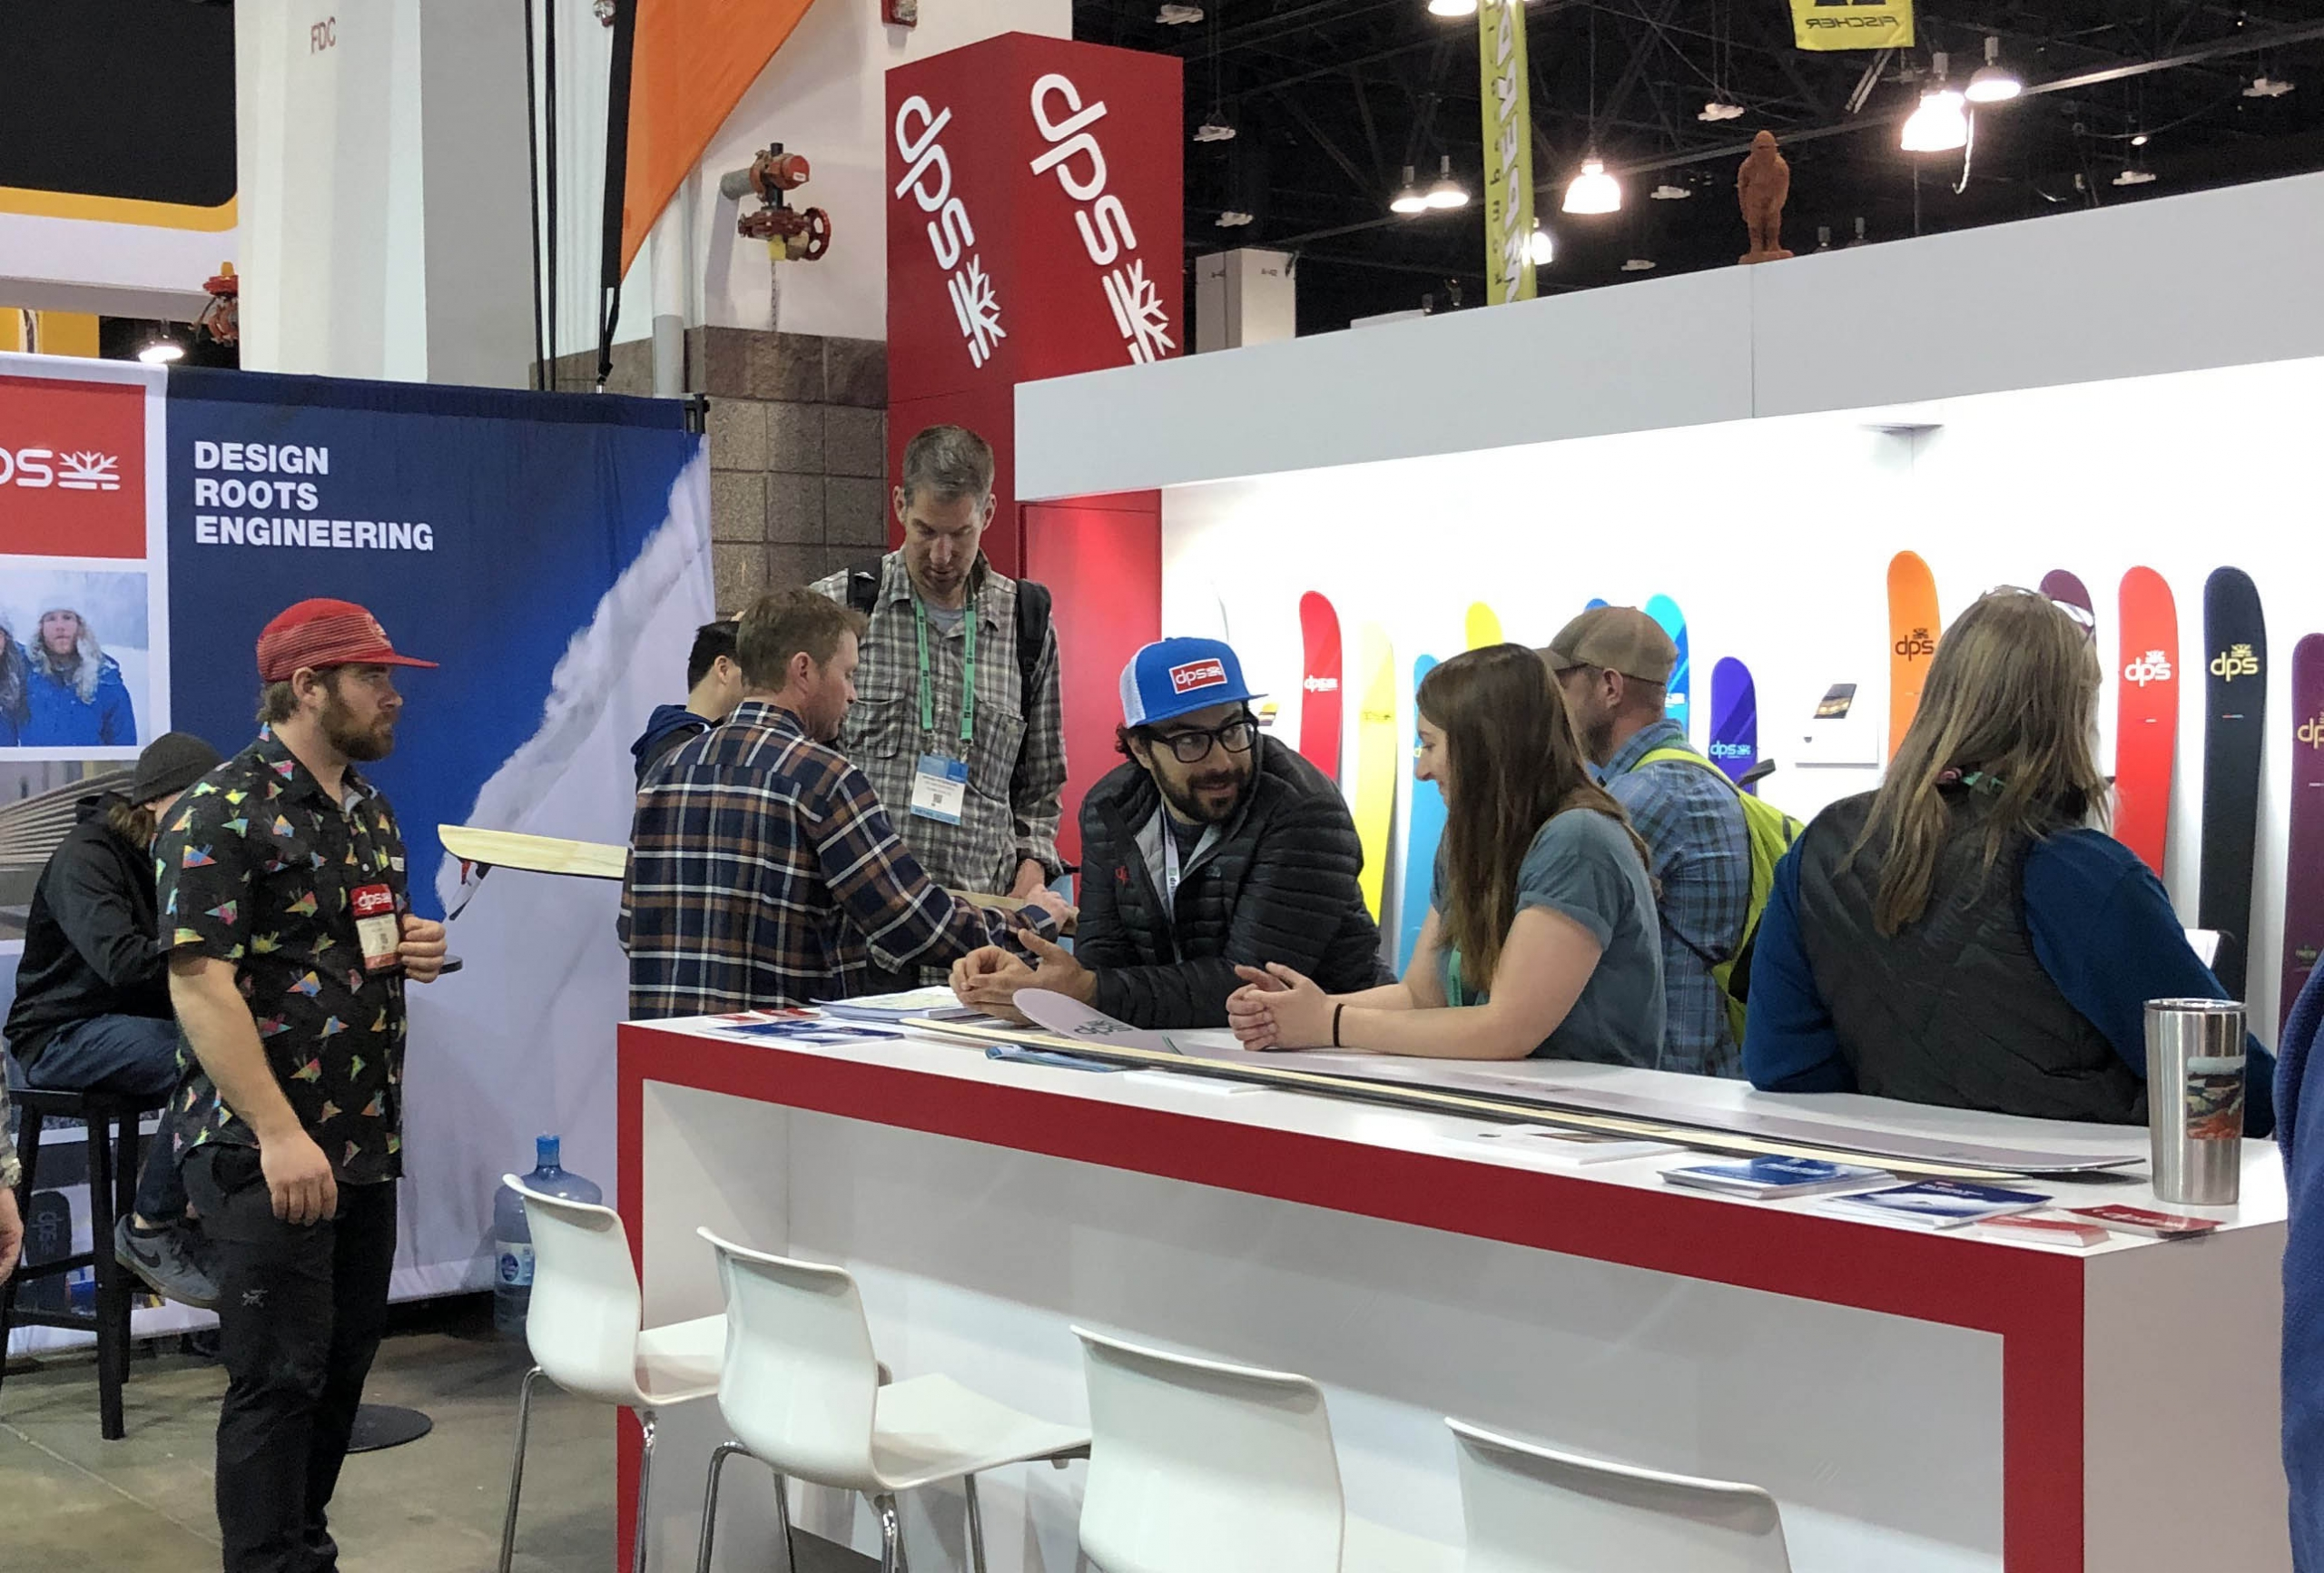 DPS booth at Outdoor Retailer Snow Show 2020